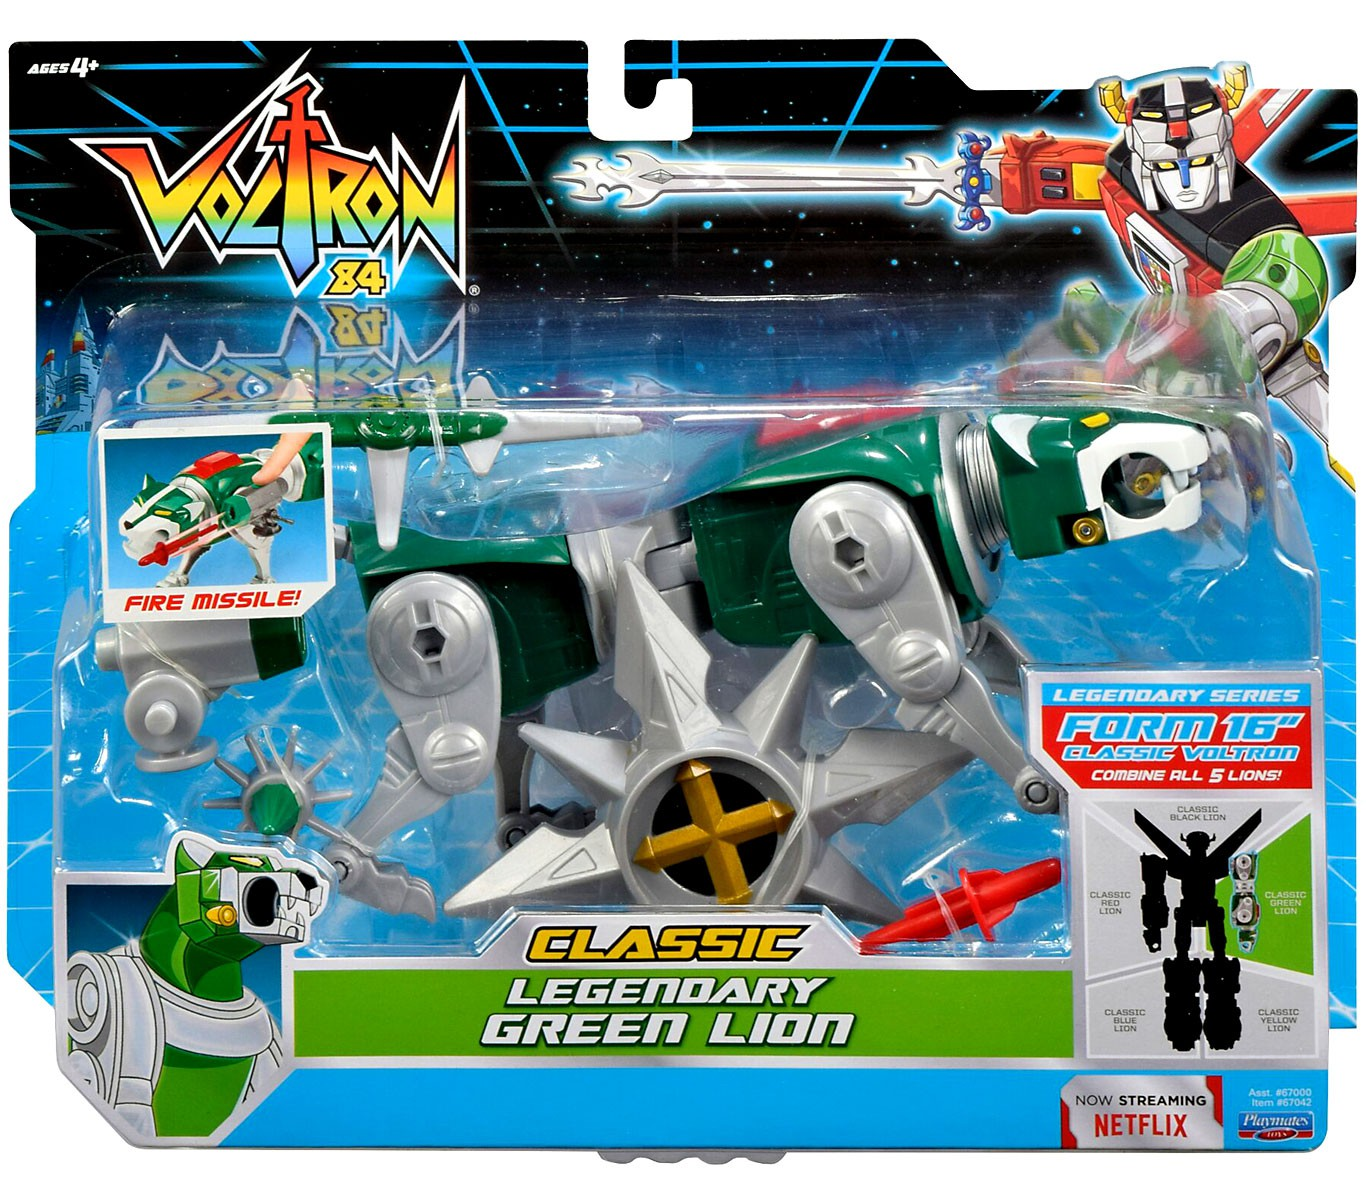 Voltron CLASSIC Legendary Green Lion Combinable Action Figure by Playmates Toys Inc.